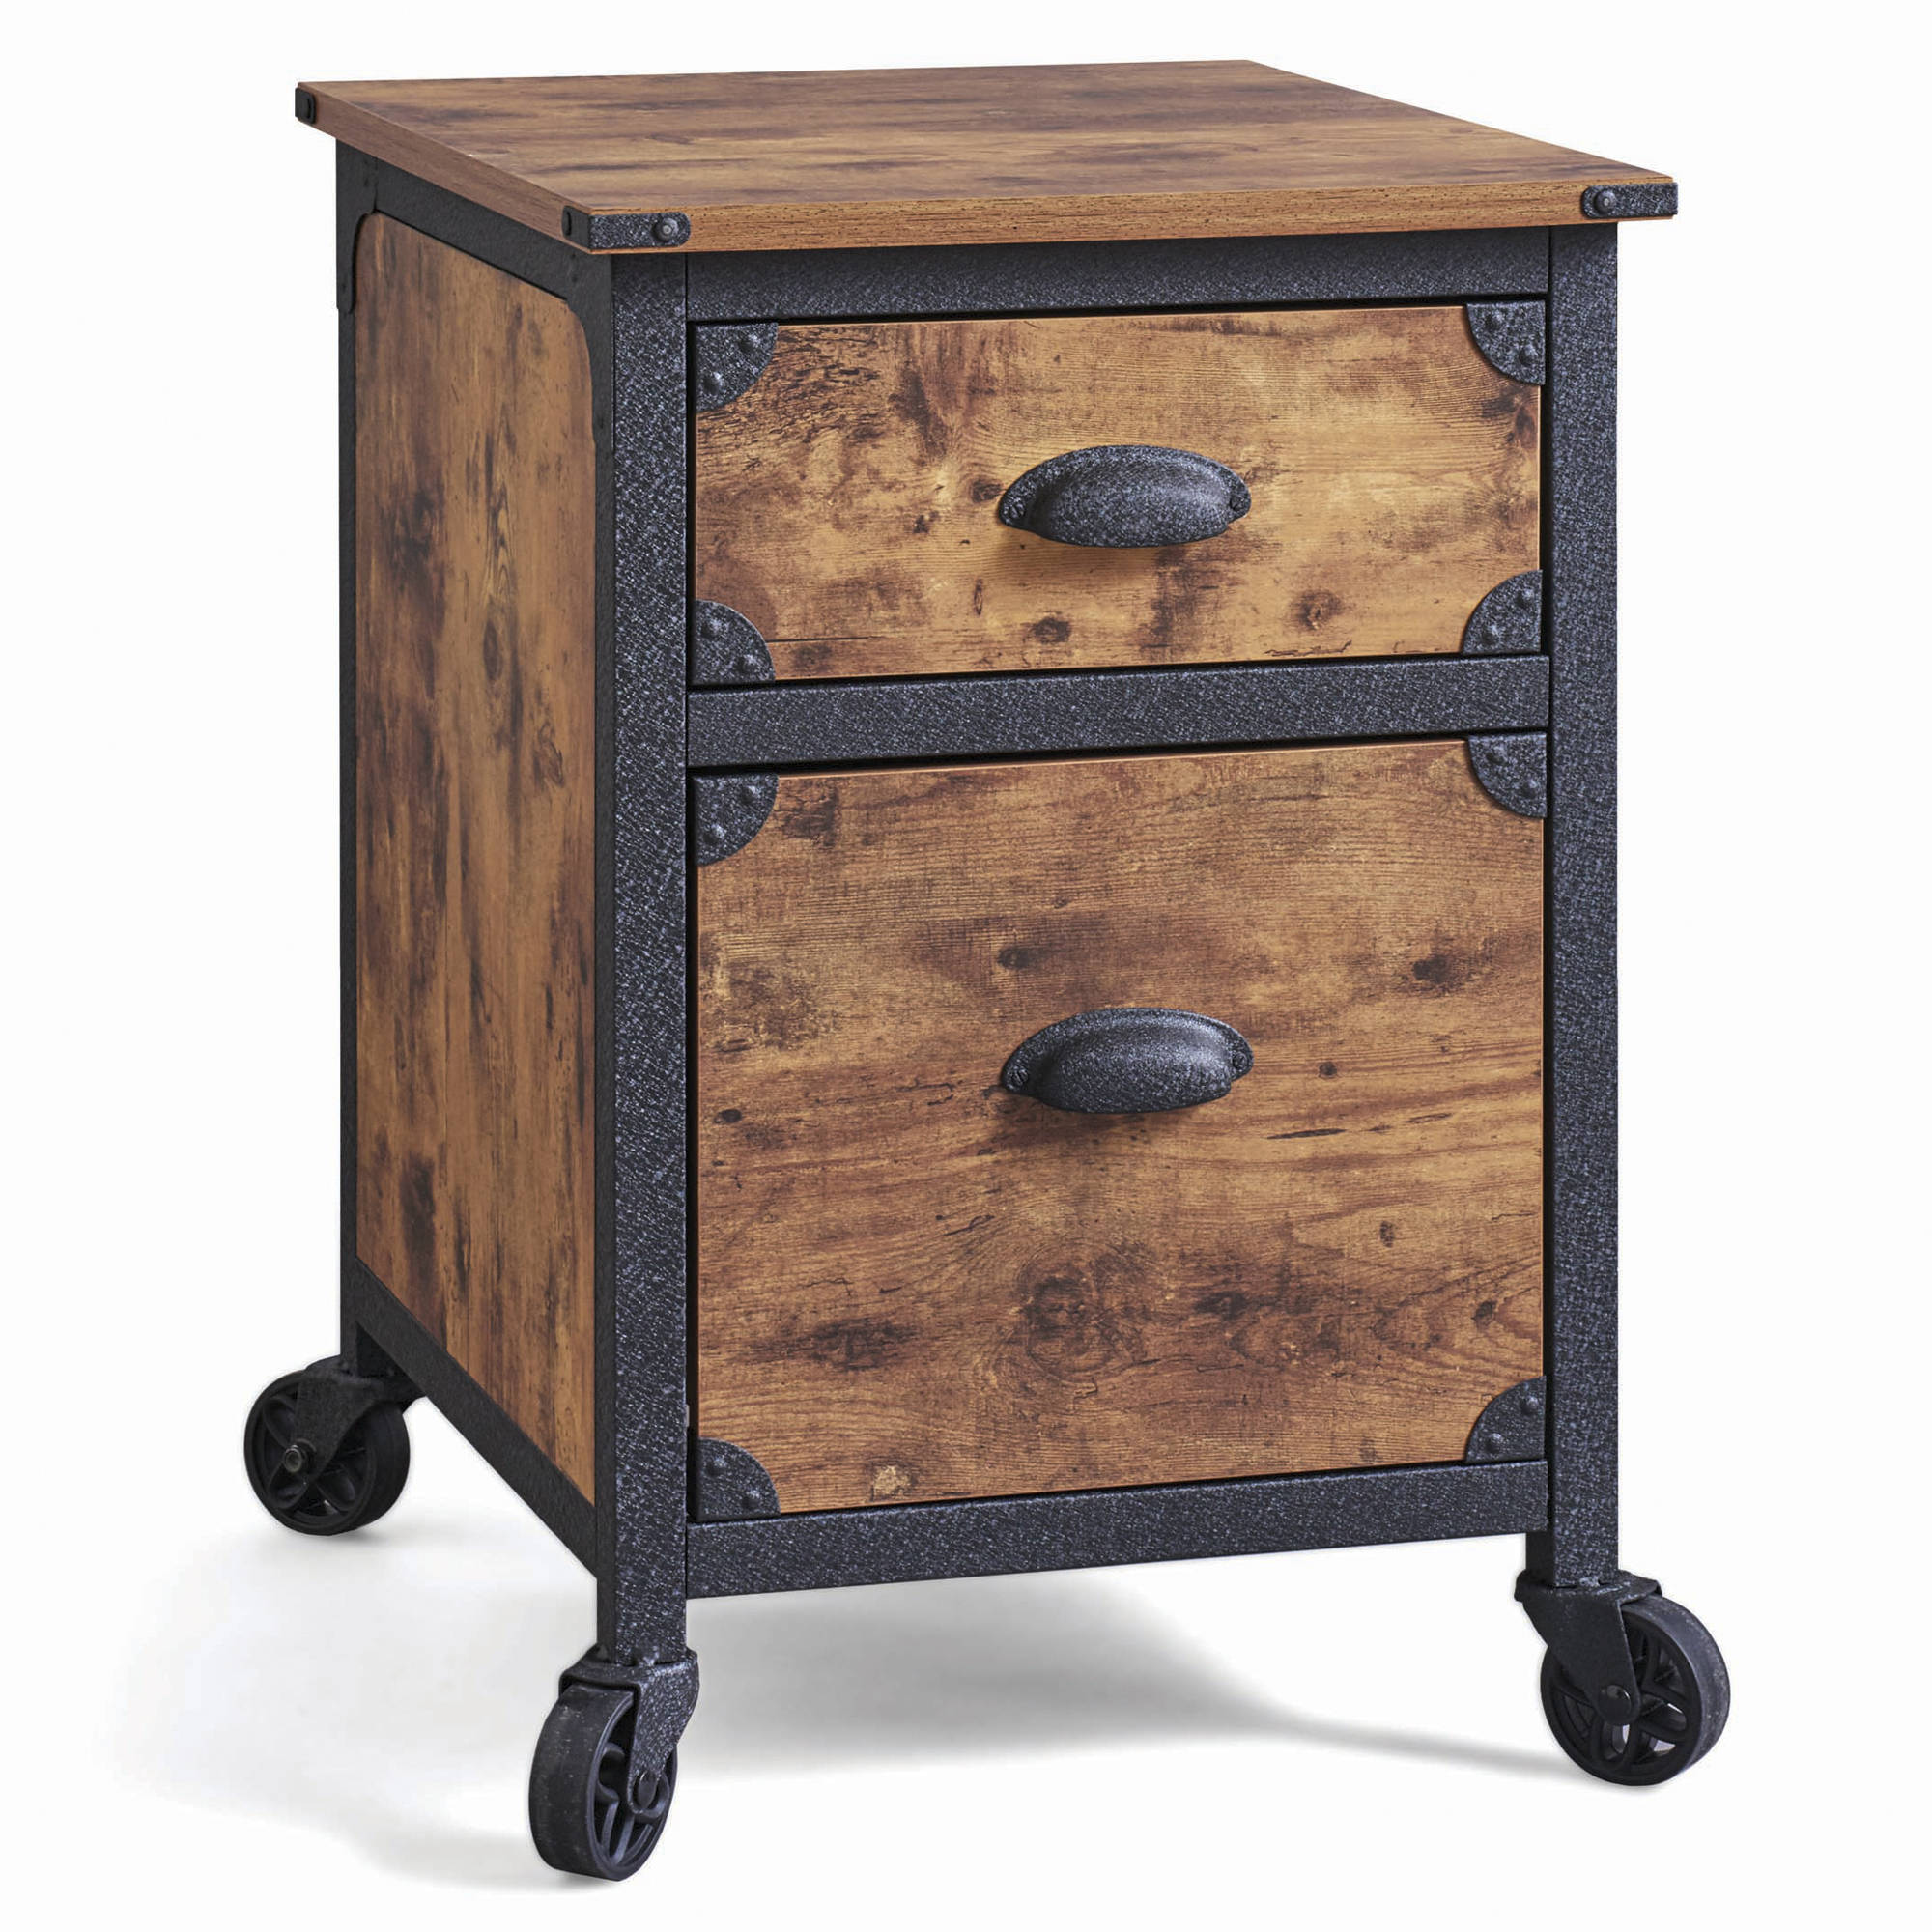 better homes and gardens rustic country file cabinet weathered pine finish walmartcom - Small File Cabinet